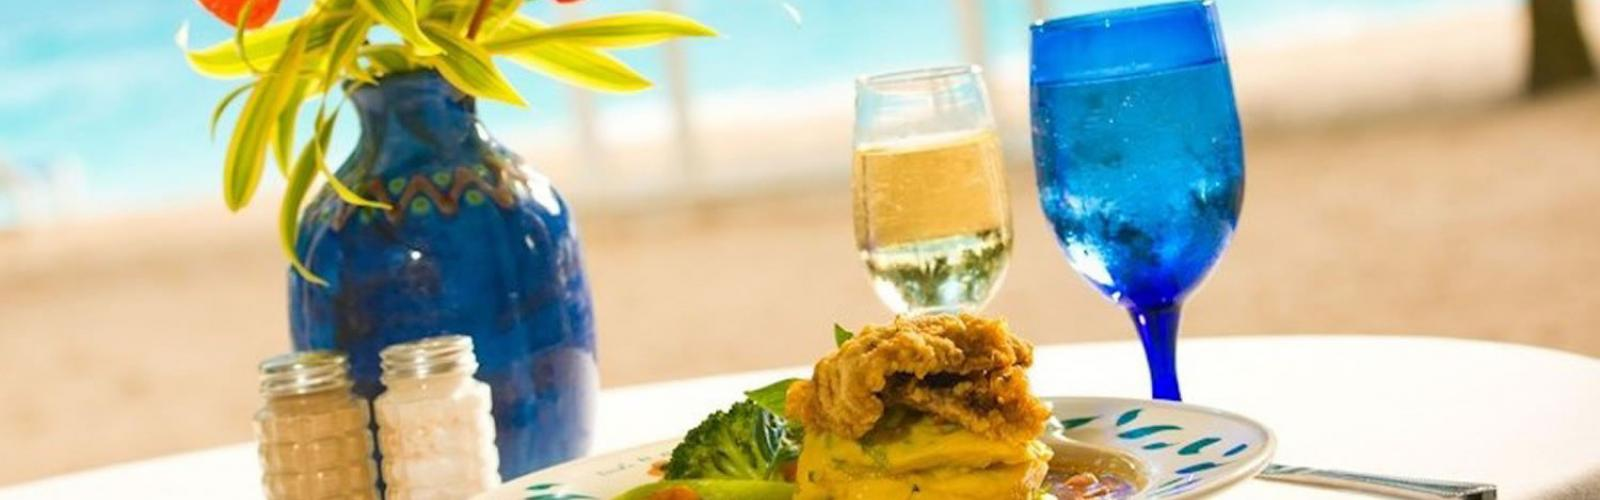 blue glass and blue vase on table at beach with fish